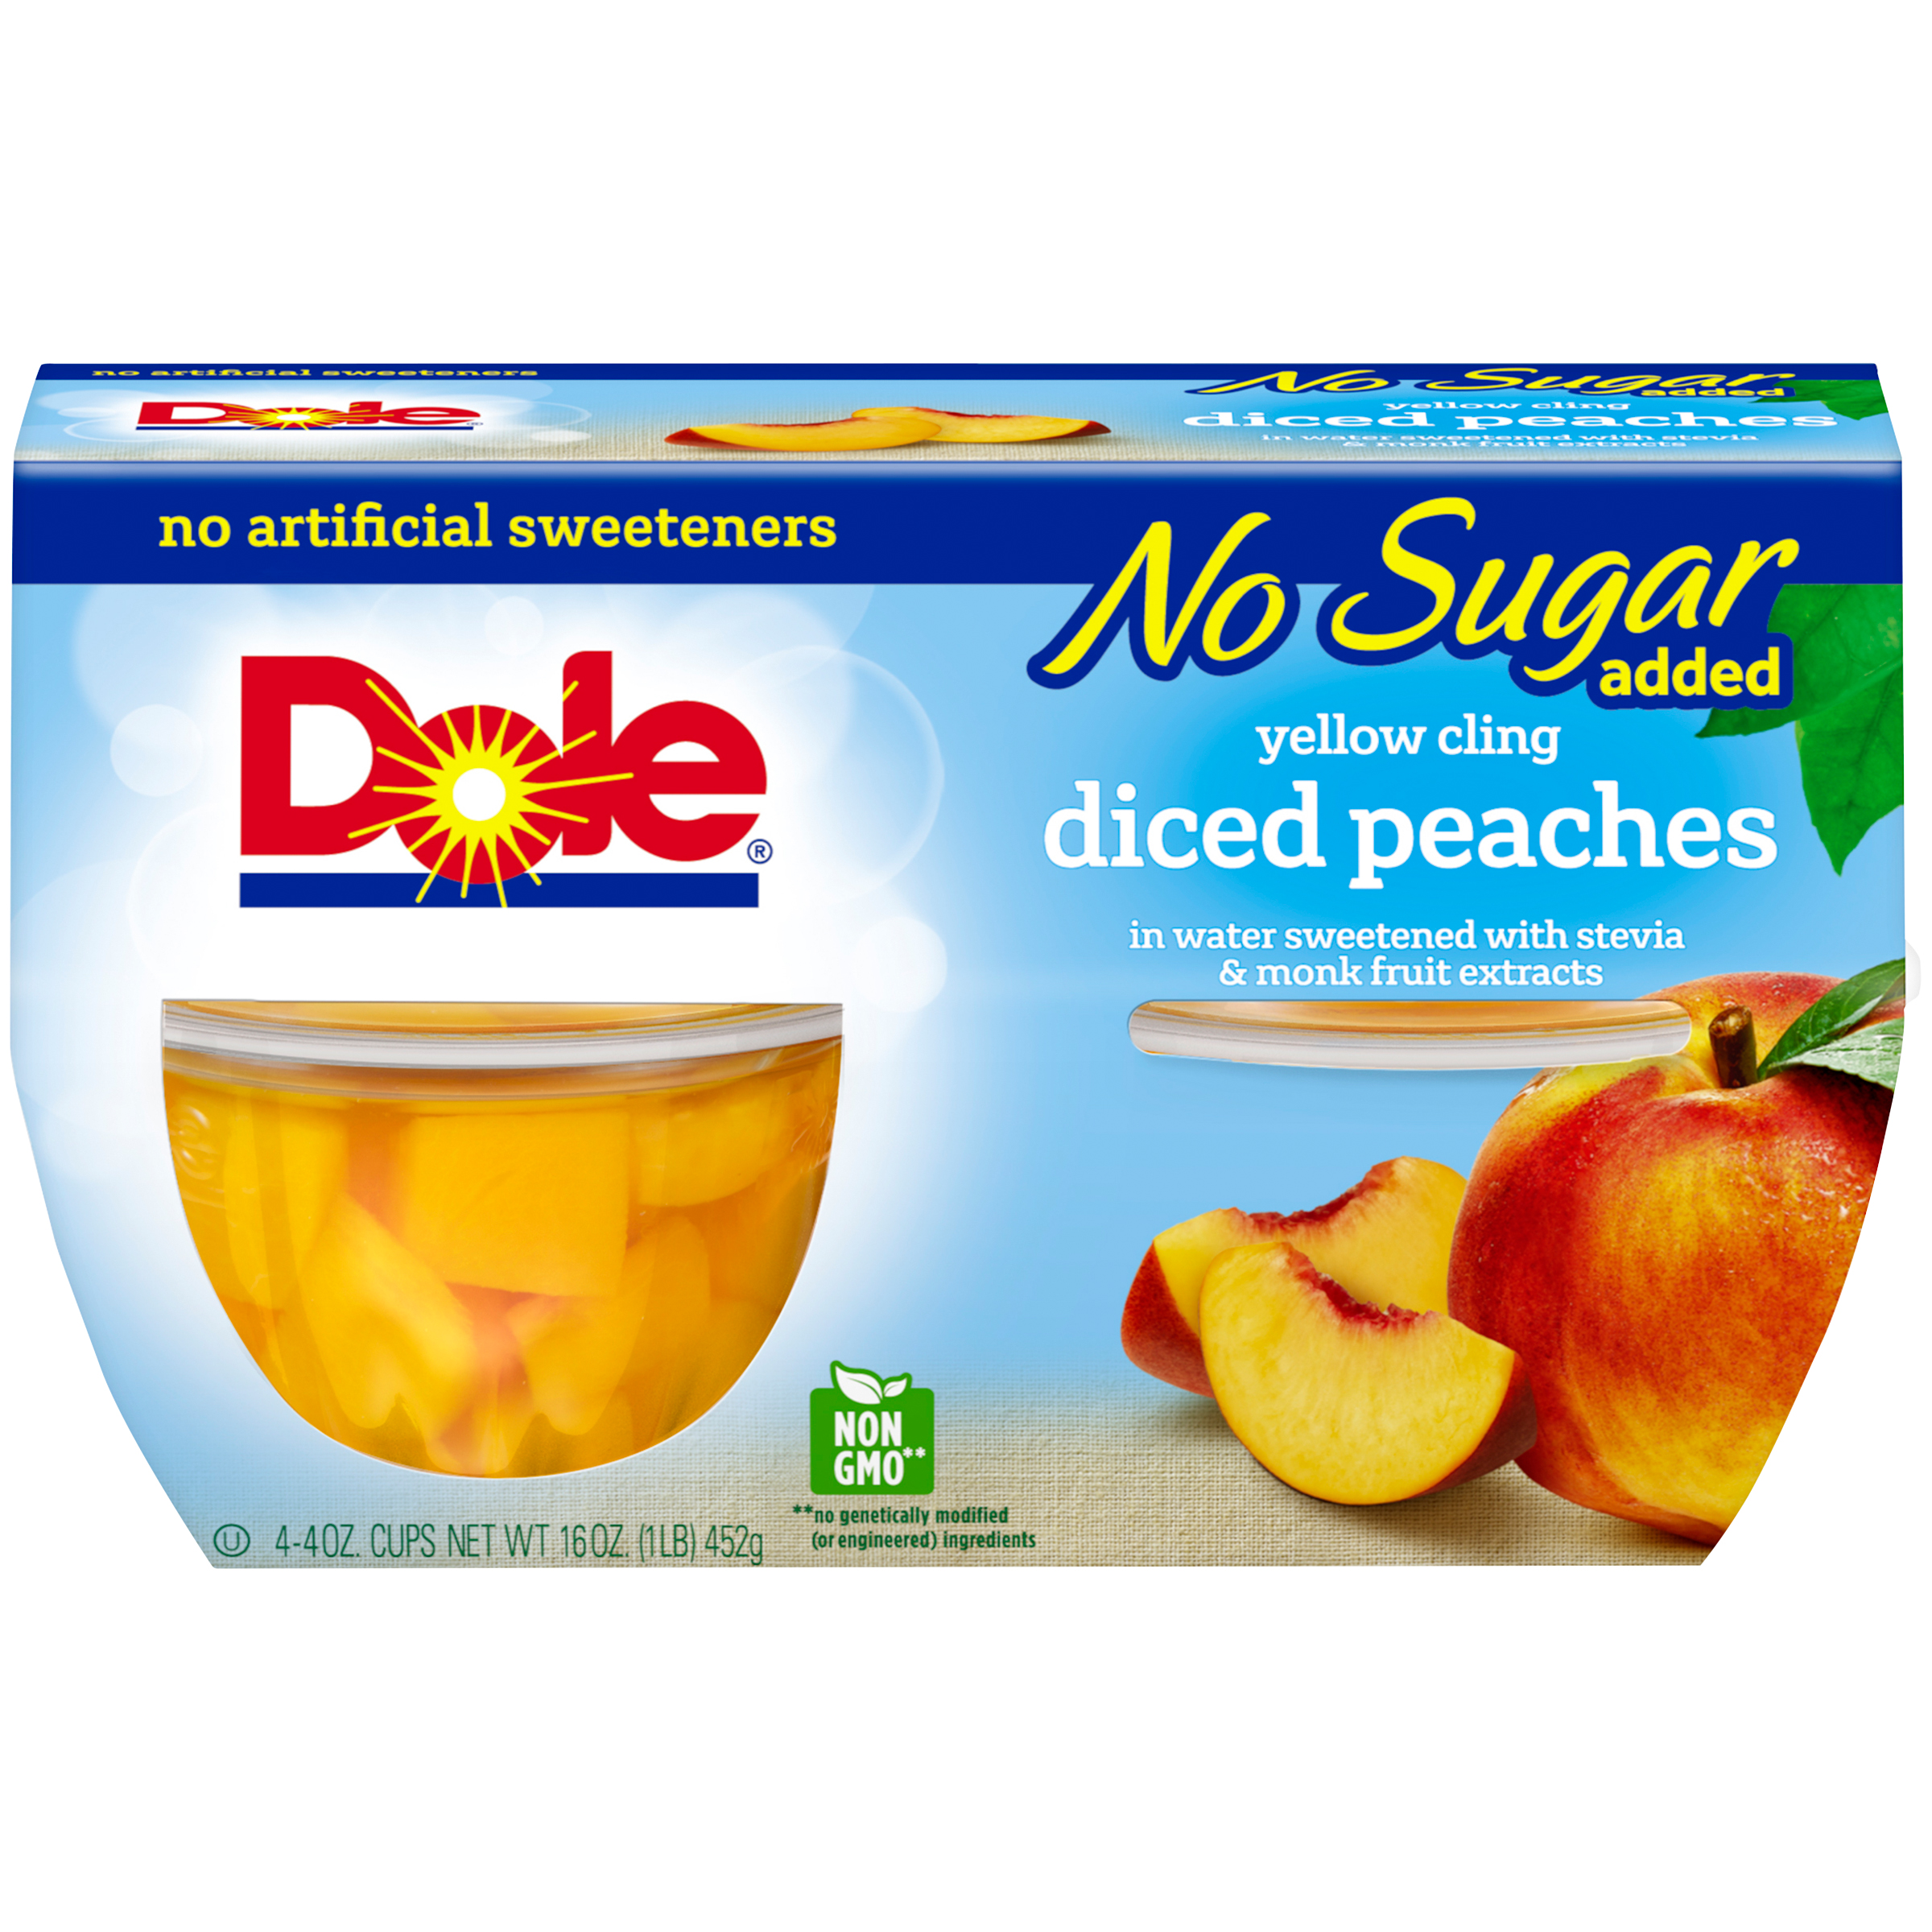 Dole Fruit Bowls, No Sugar Added Yellow Cling Diced Peaches, 4 Ounce (4 Cups)